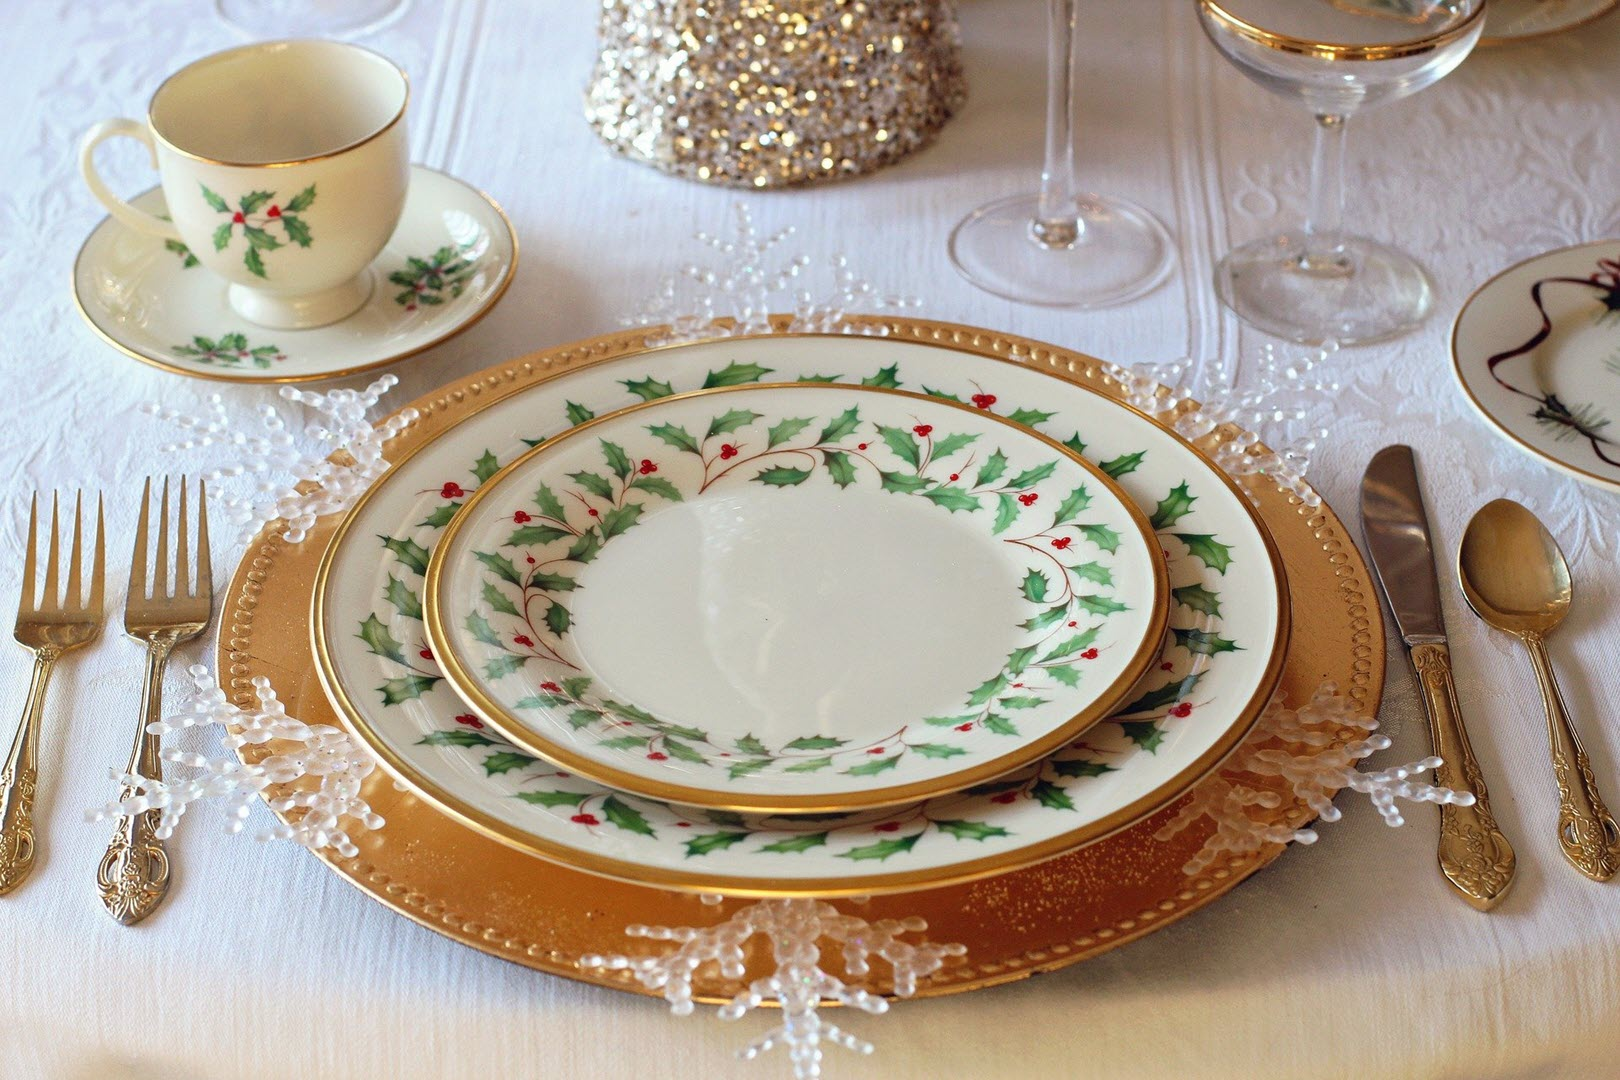 Dinner table setting, plates, glasses, and cutlery, decorated with snowflakes and holly leaves